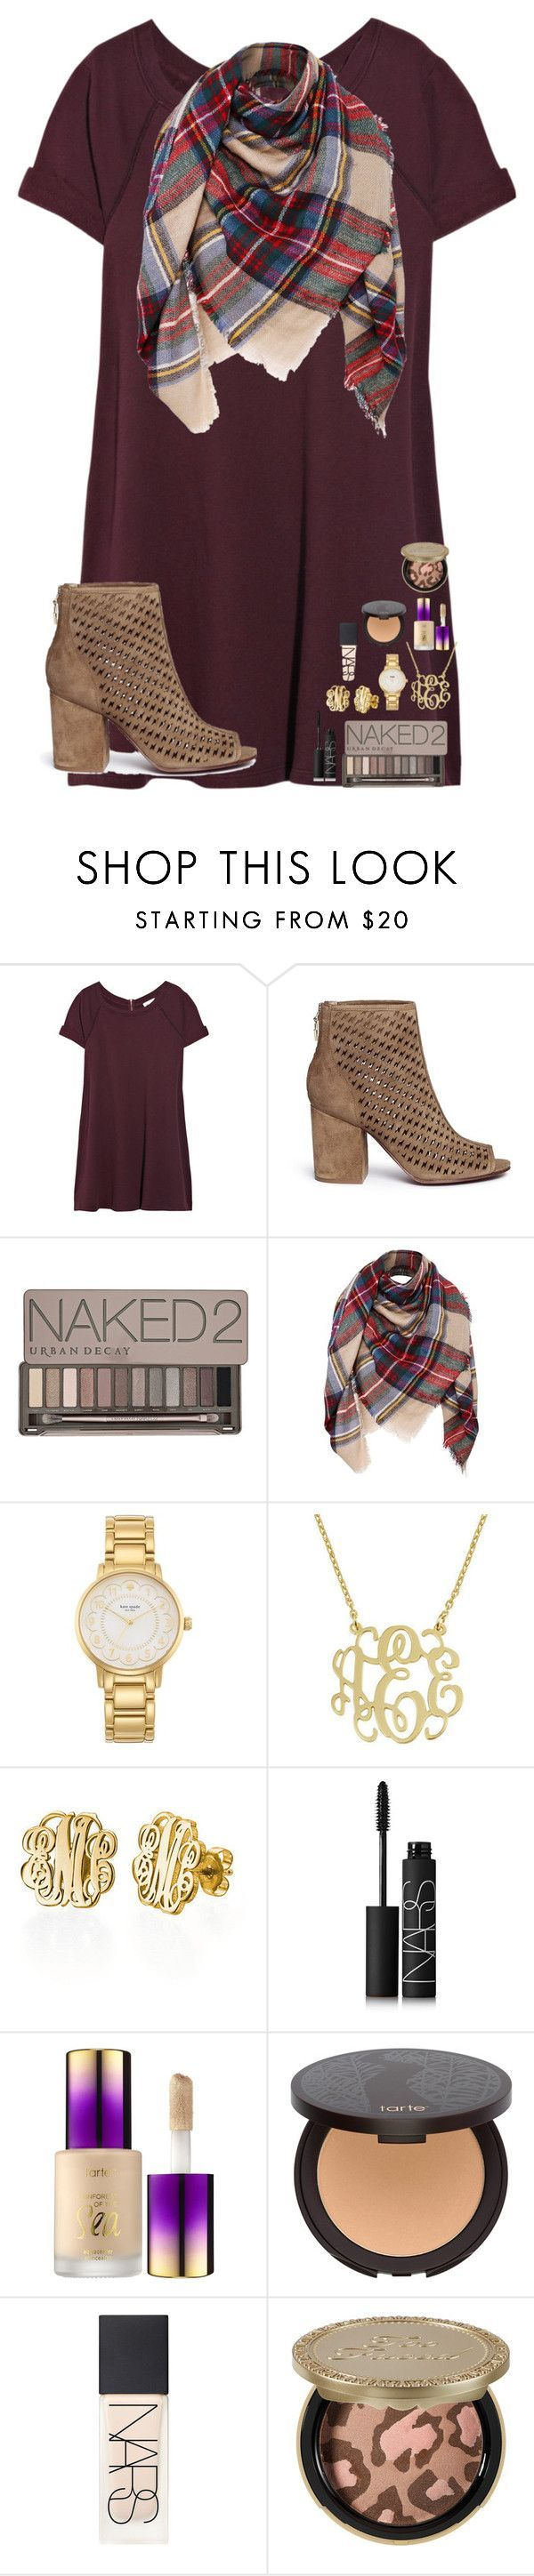 """Christmas Party (Day 14)"" by mae343 ❤ liked on Polyvore featuring Vanessa Bruno, Ash, Urban Decay, Kate Spade, NARS Cosmetics, Sephora Collection, tarte, Too Faced Cosmetics and 30DaysOfChristmas2k16 #urbanmoda"